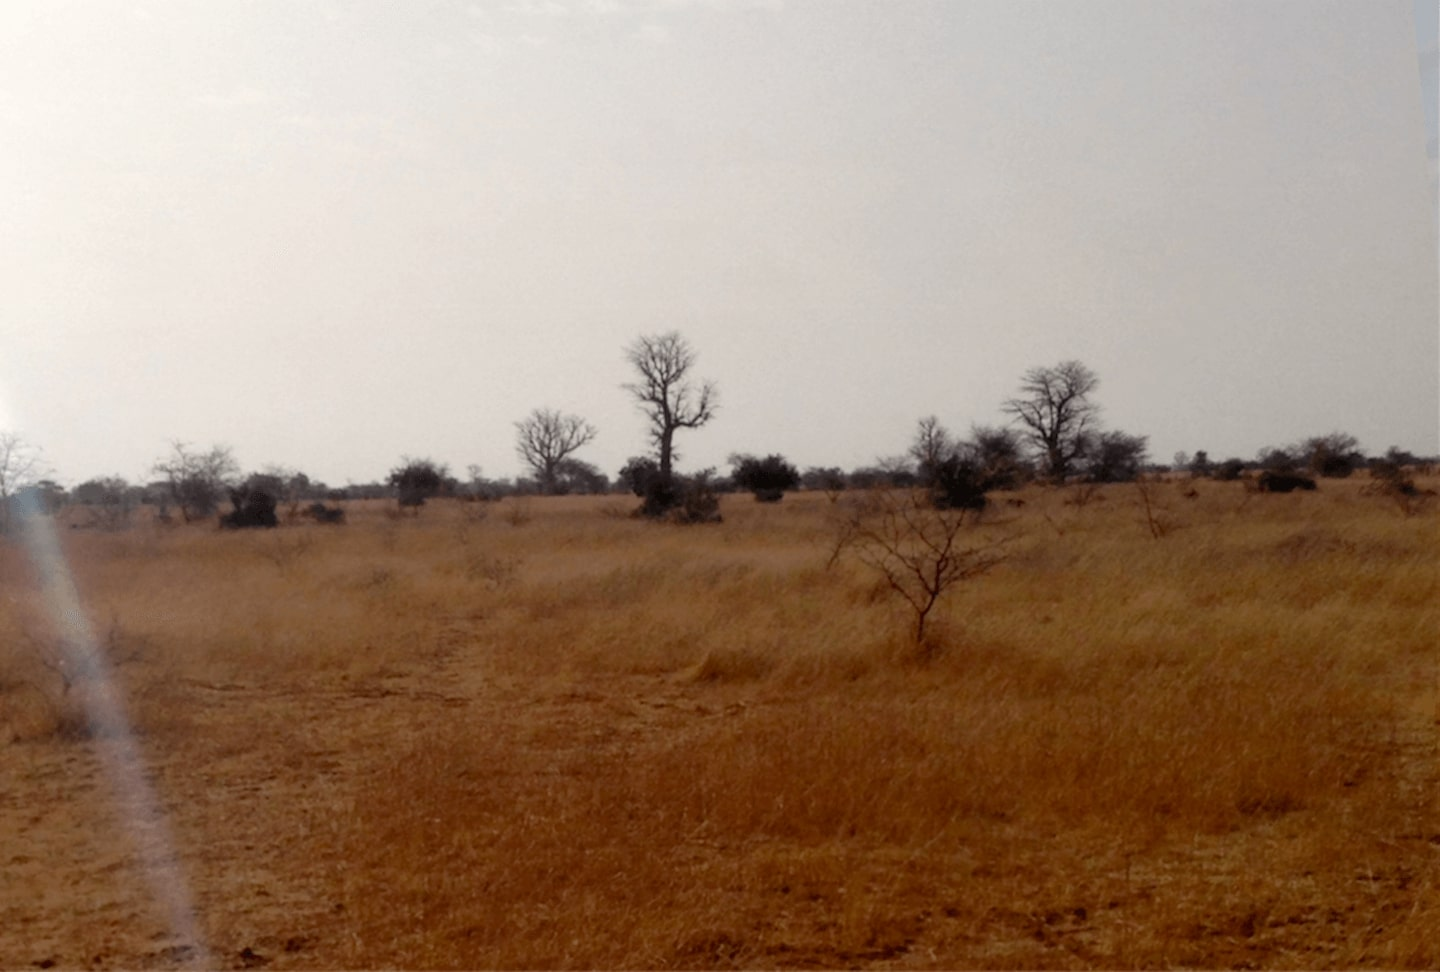 Landscape with rainfall and without - Senegal 2